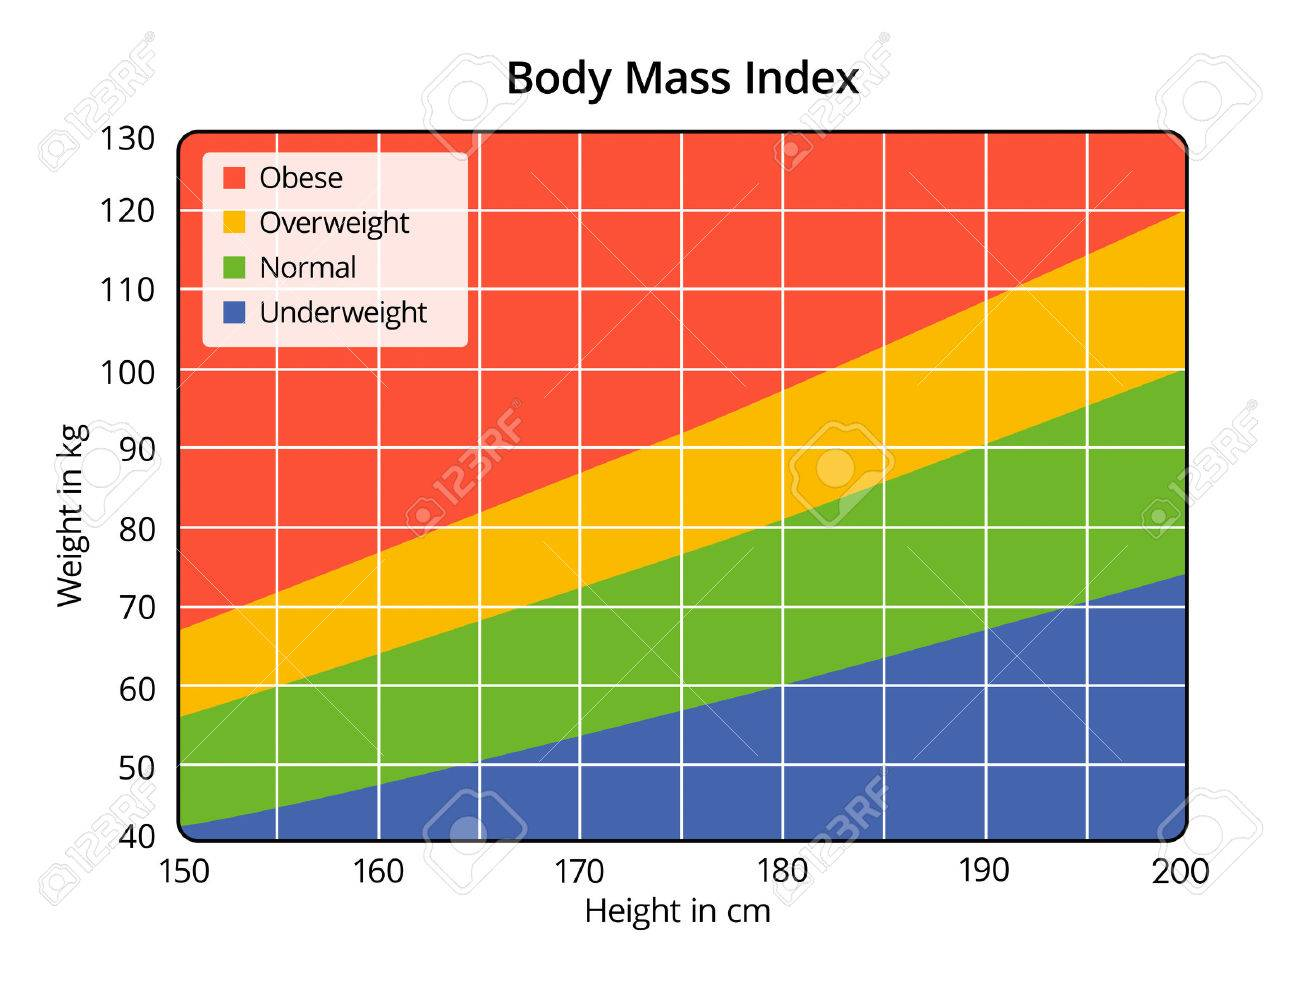 Body Mass Index In Cm And Kg Stock Photo 27602177 Body Mass Index In Cm  And How To Calculate Bmi Equation